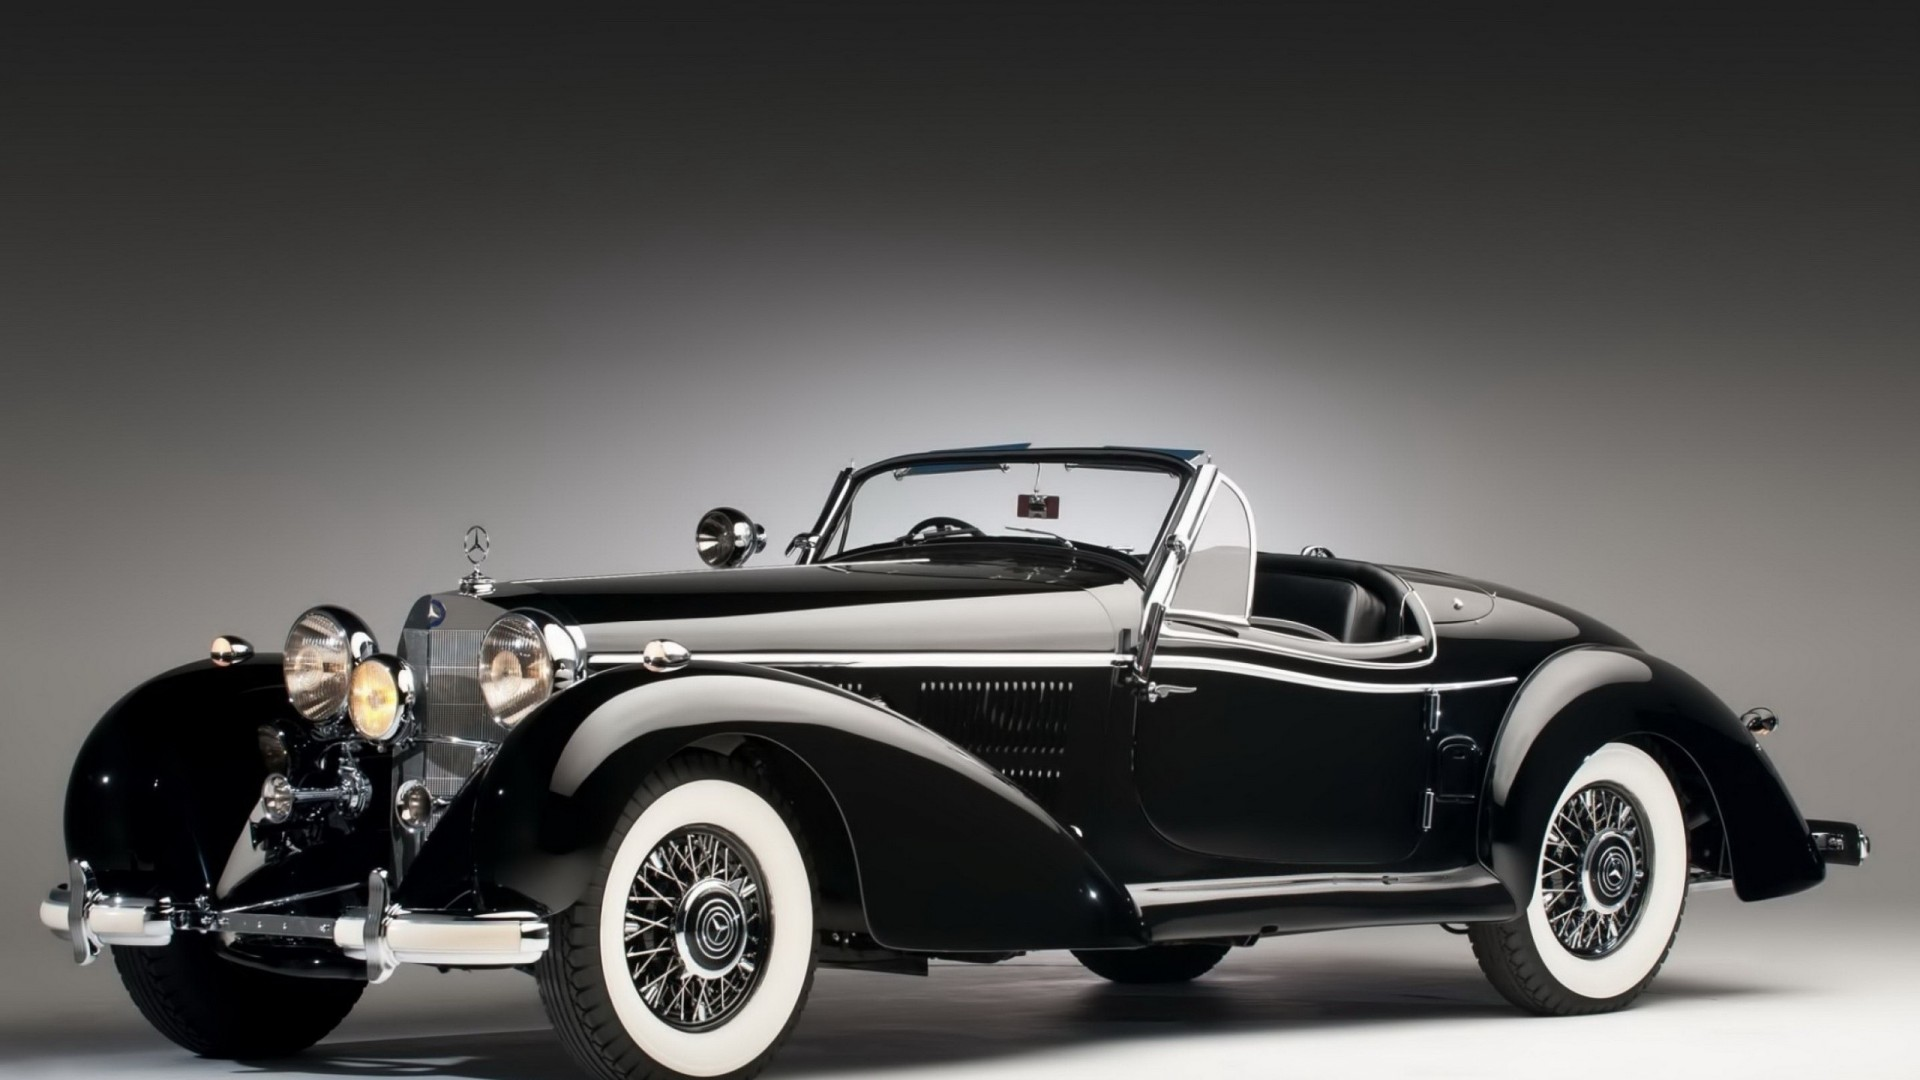 Vintage Cars High Definition Wallpaper 1920x1080